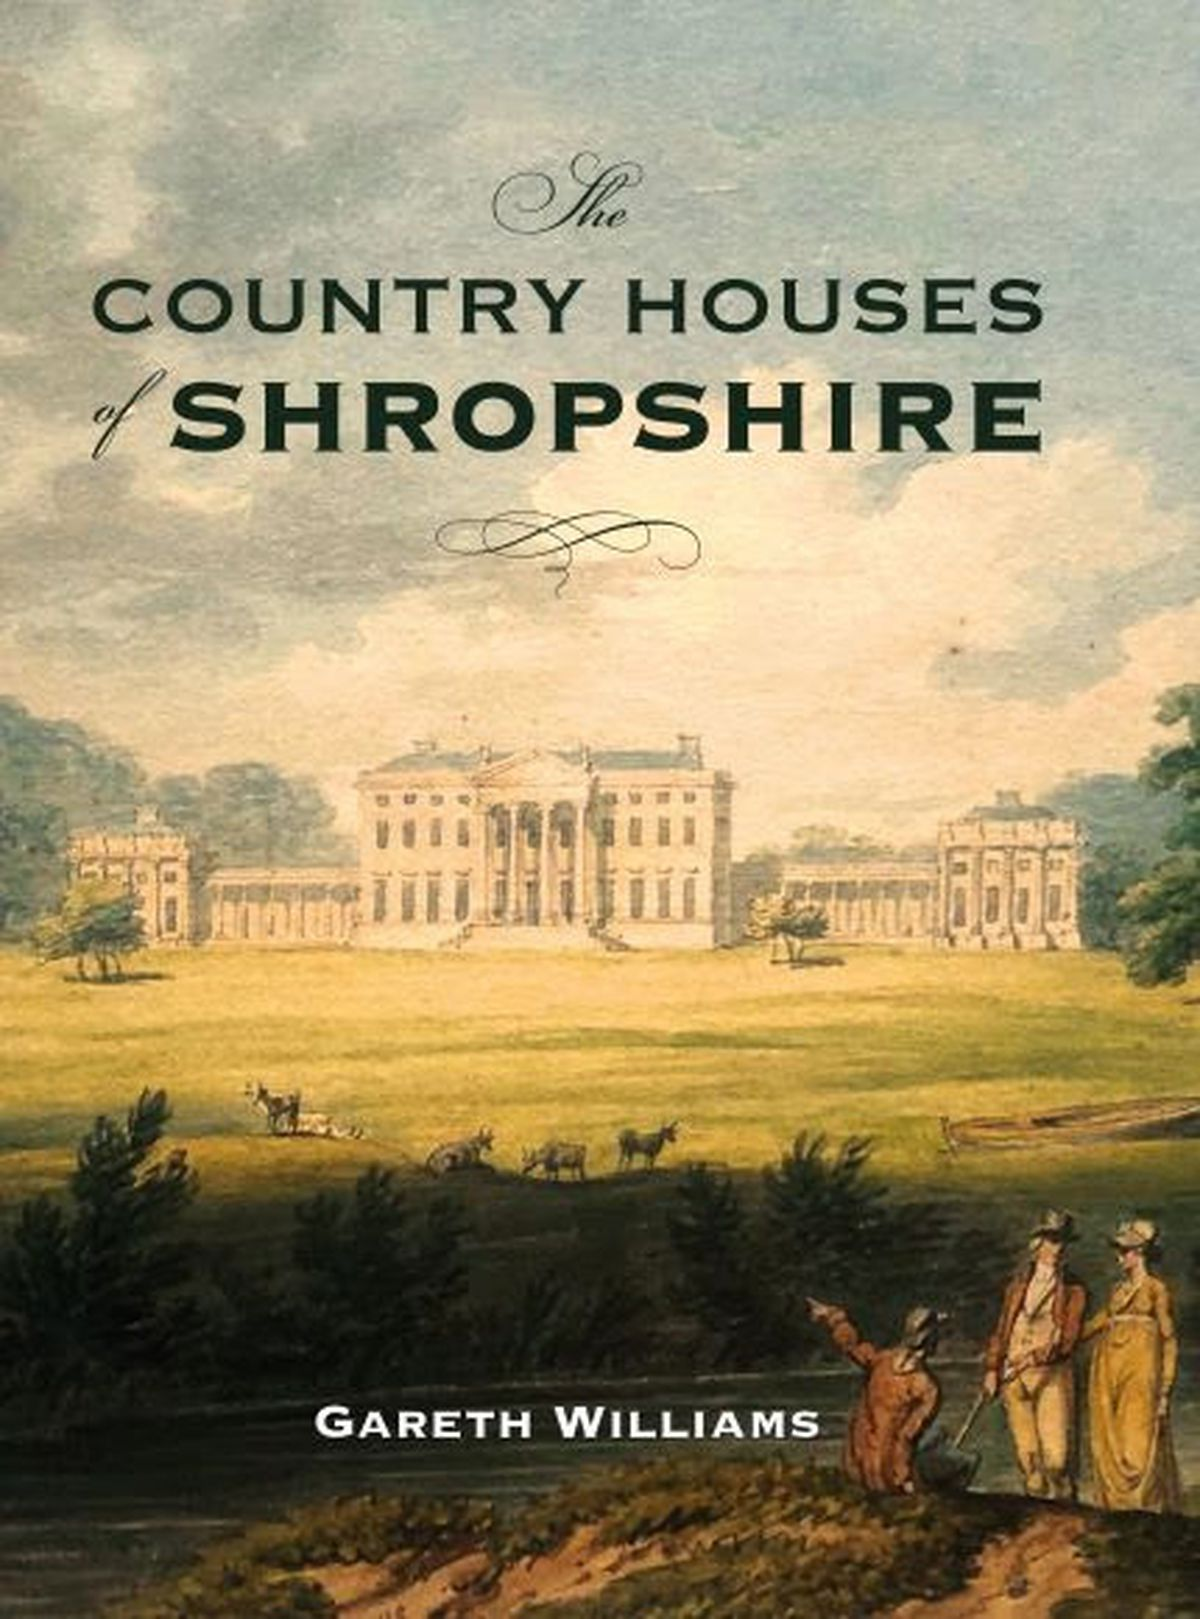 The Country Houses of Shropshire by Gareth Williams.